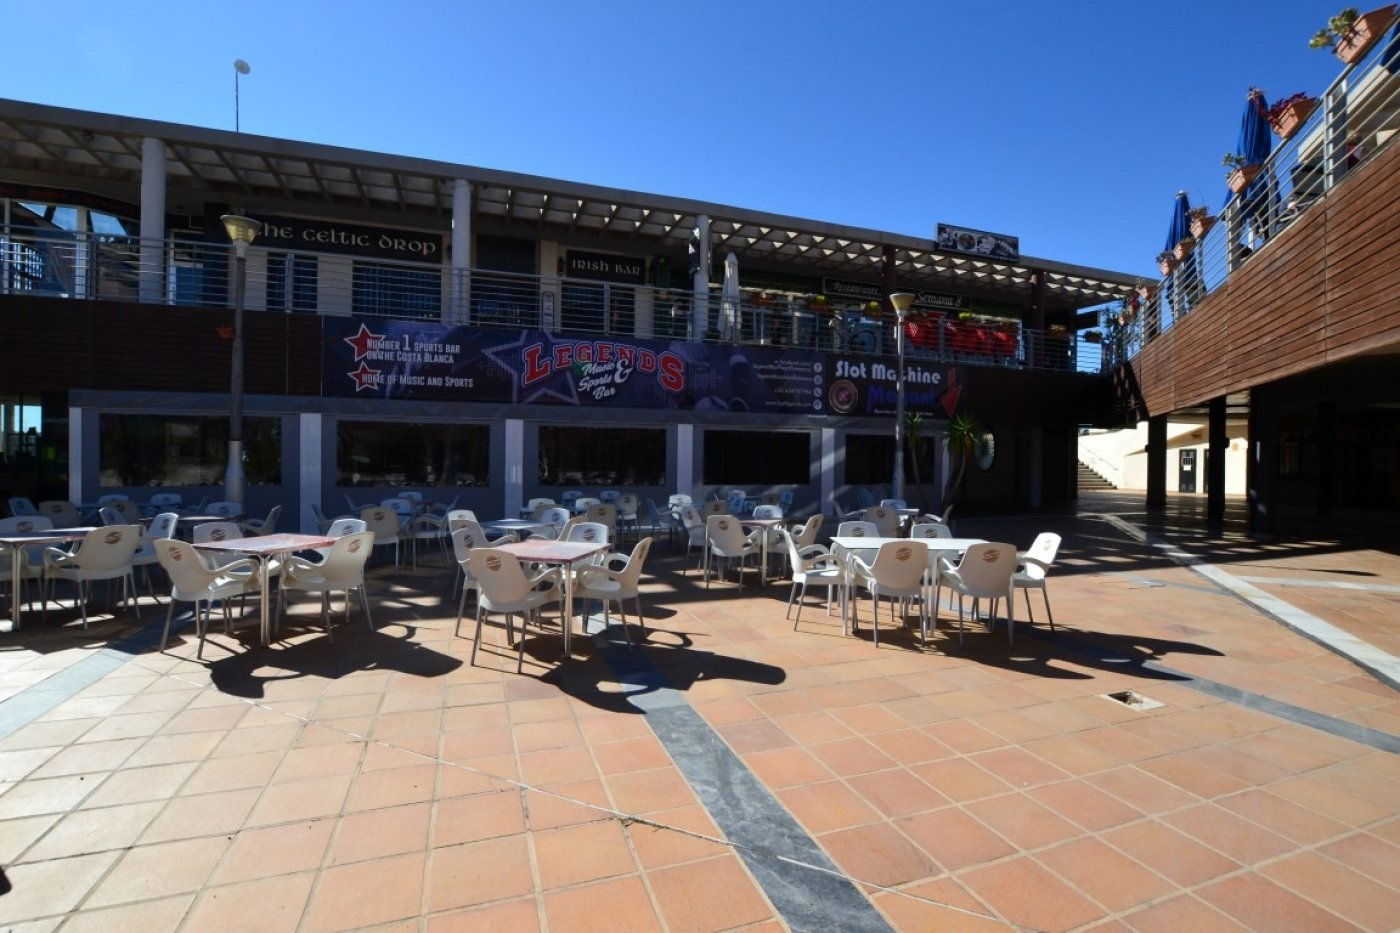 Commercial Unit - Bedrijfspanden te koop - Orihuela Costa - Playa Flamenca